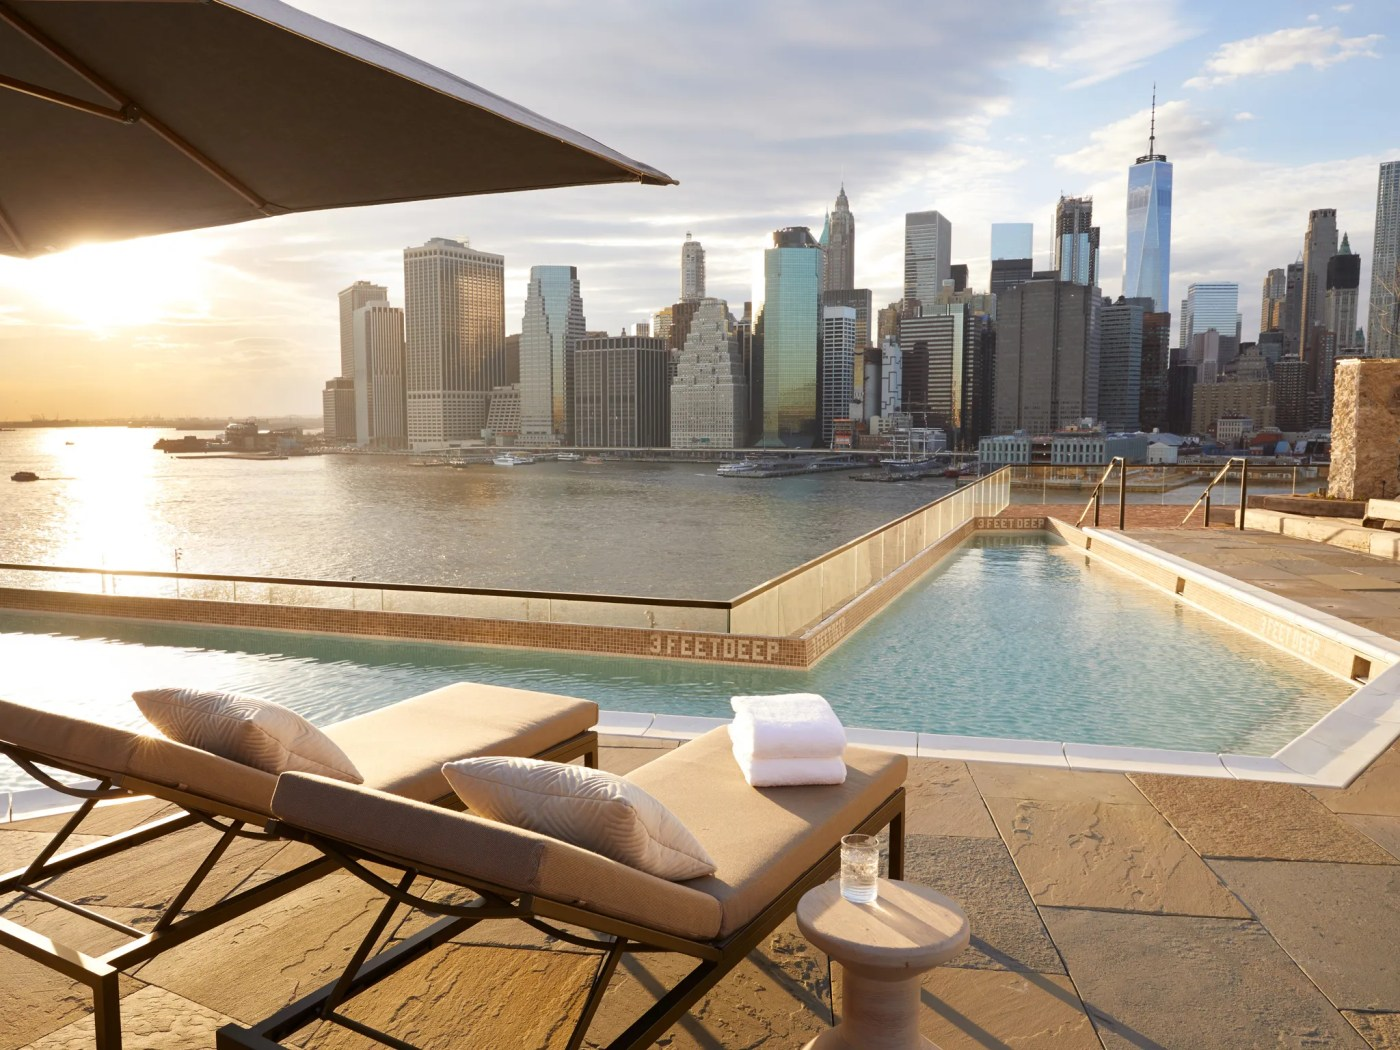 2019 Readers' Choice Awards: The Top Hotels in New York City   Condé Nast Traveler